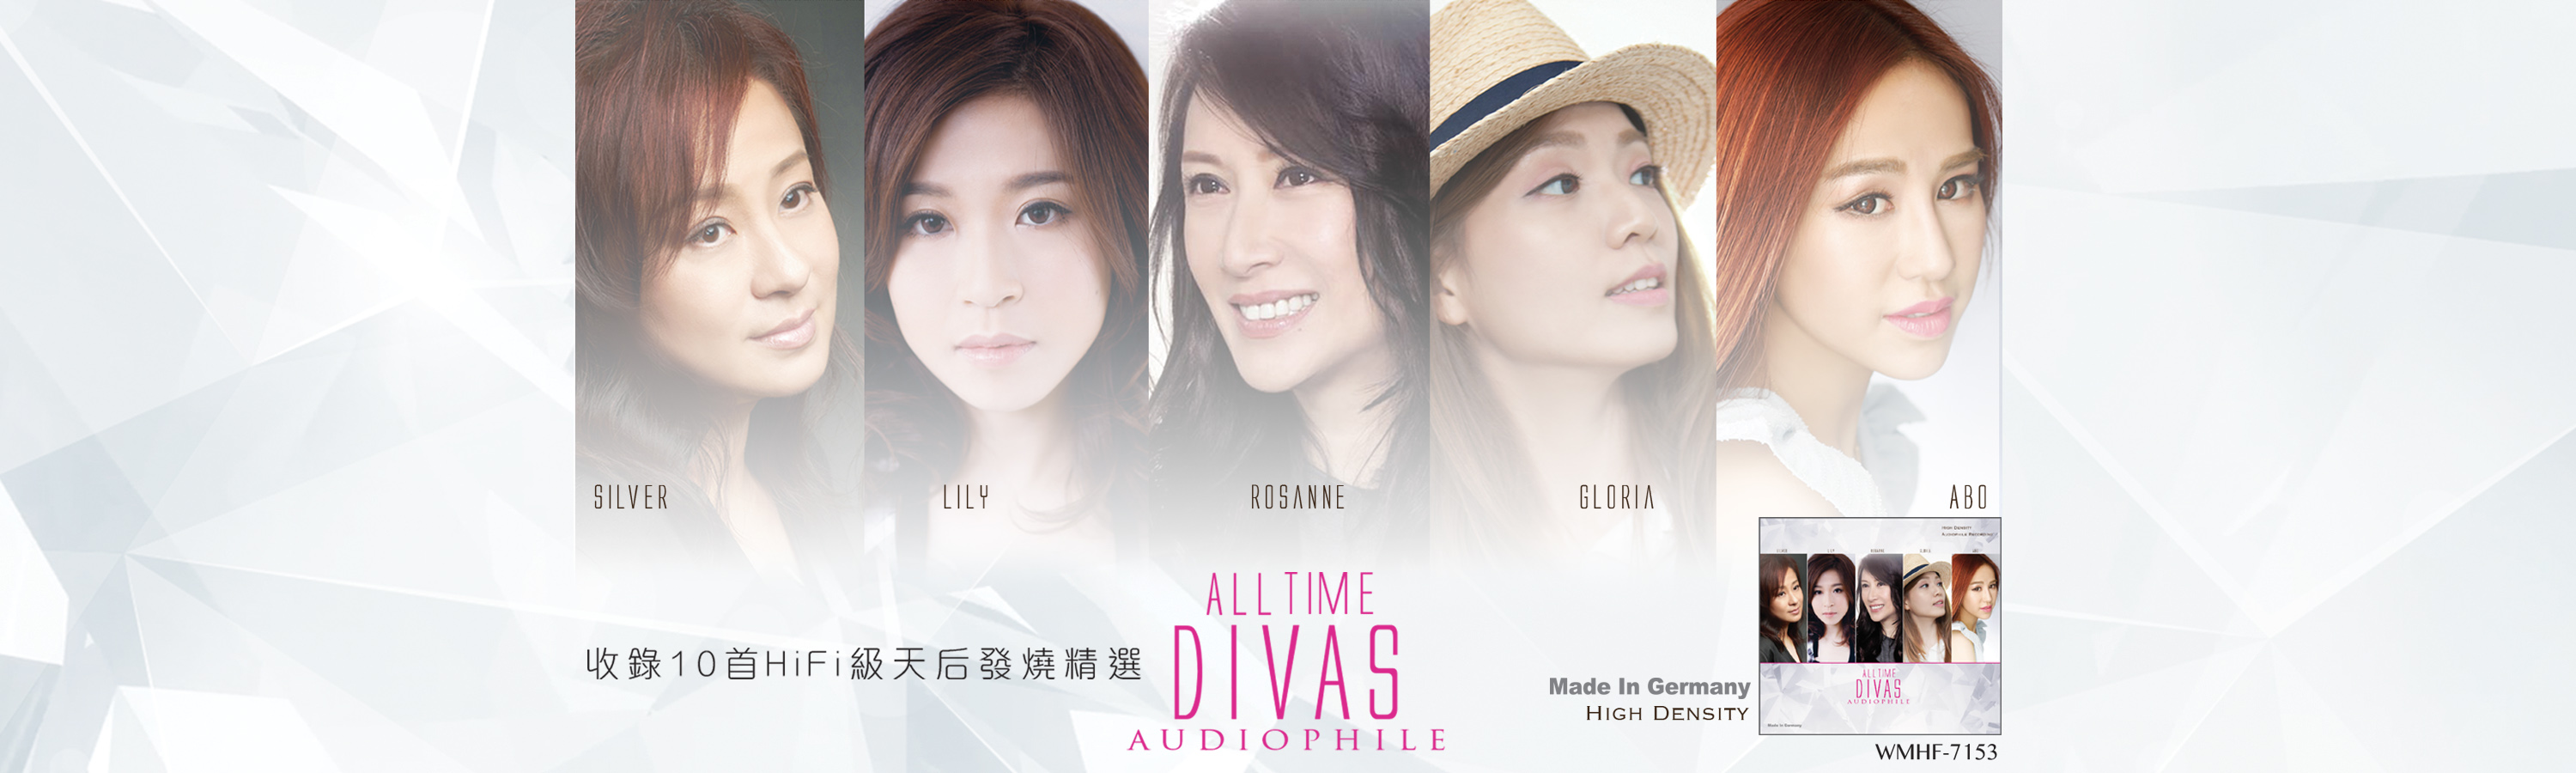 All Time Divas Audiophile